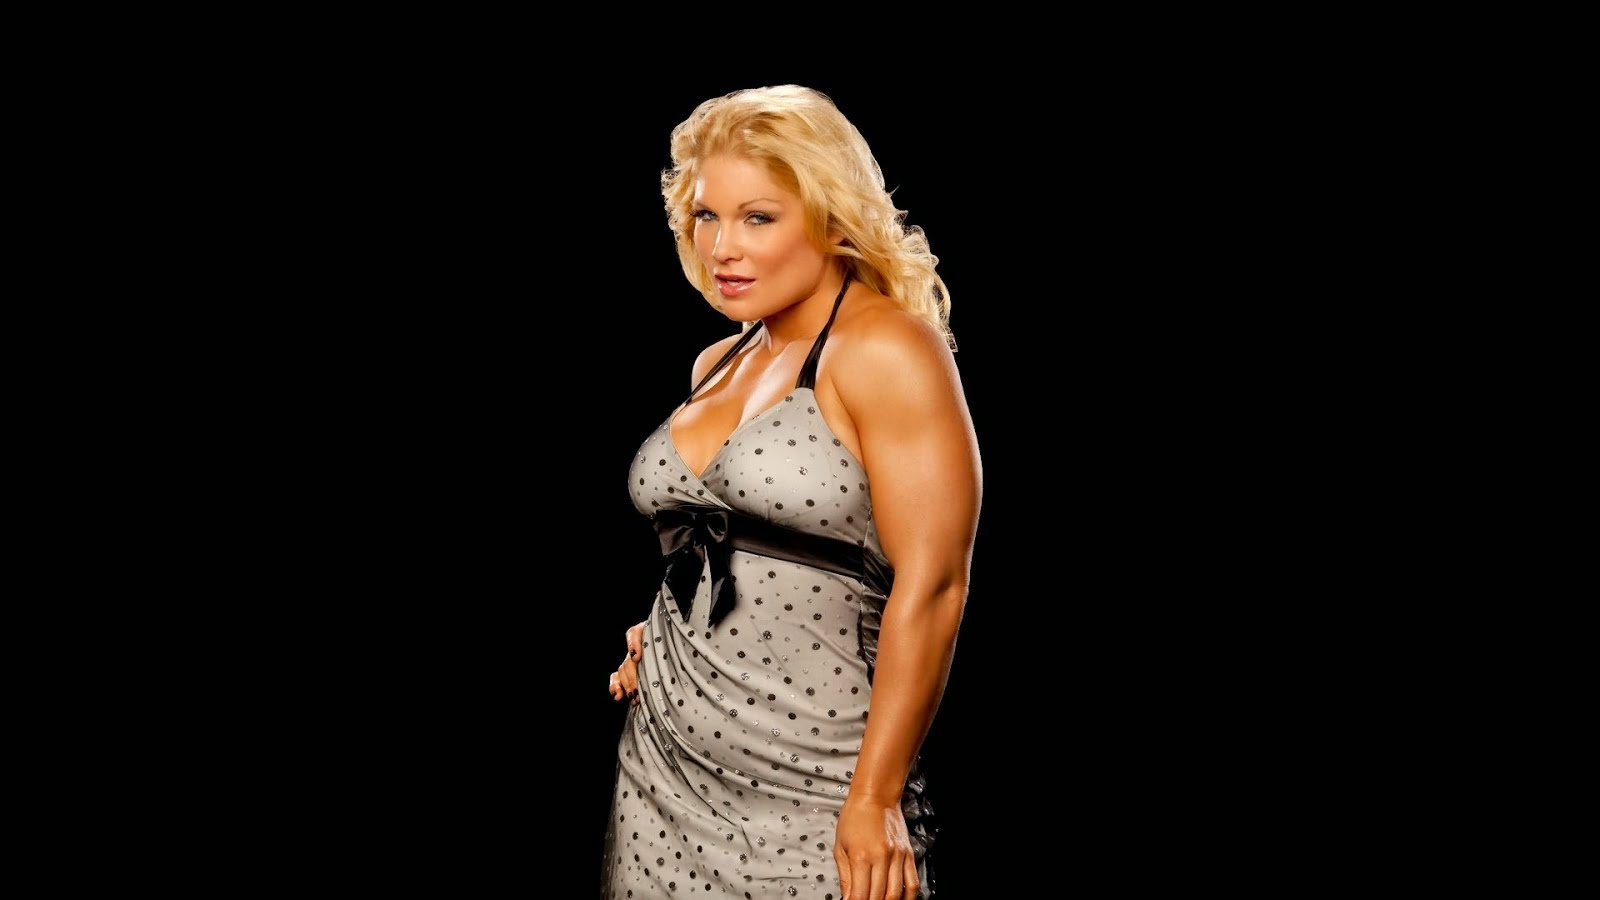 beth phoenix wwe - photo #21